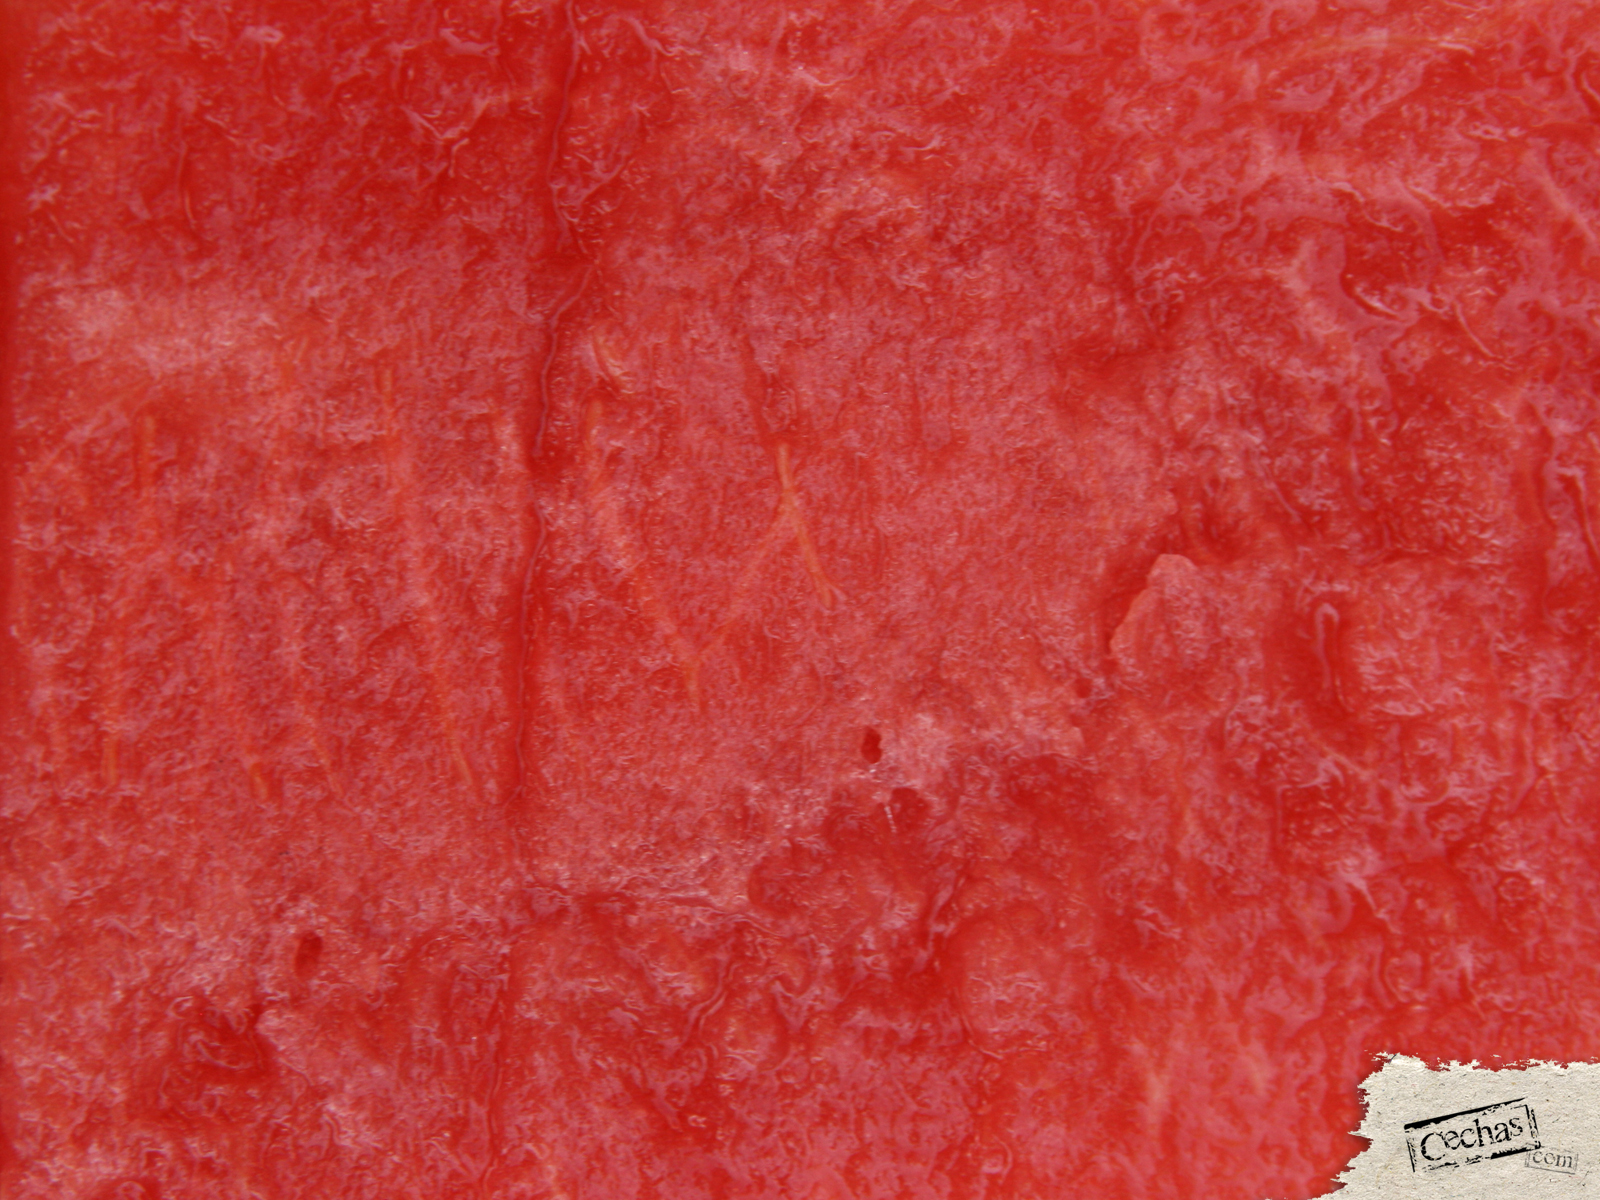 Cechas surfaces-6-1600x1200 by Cechas